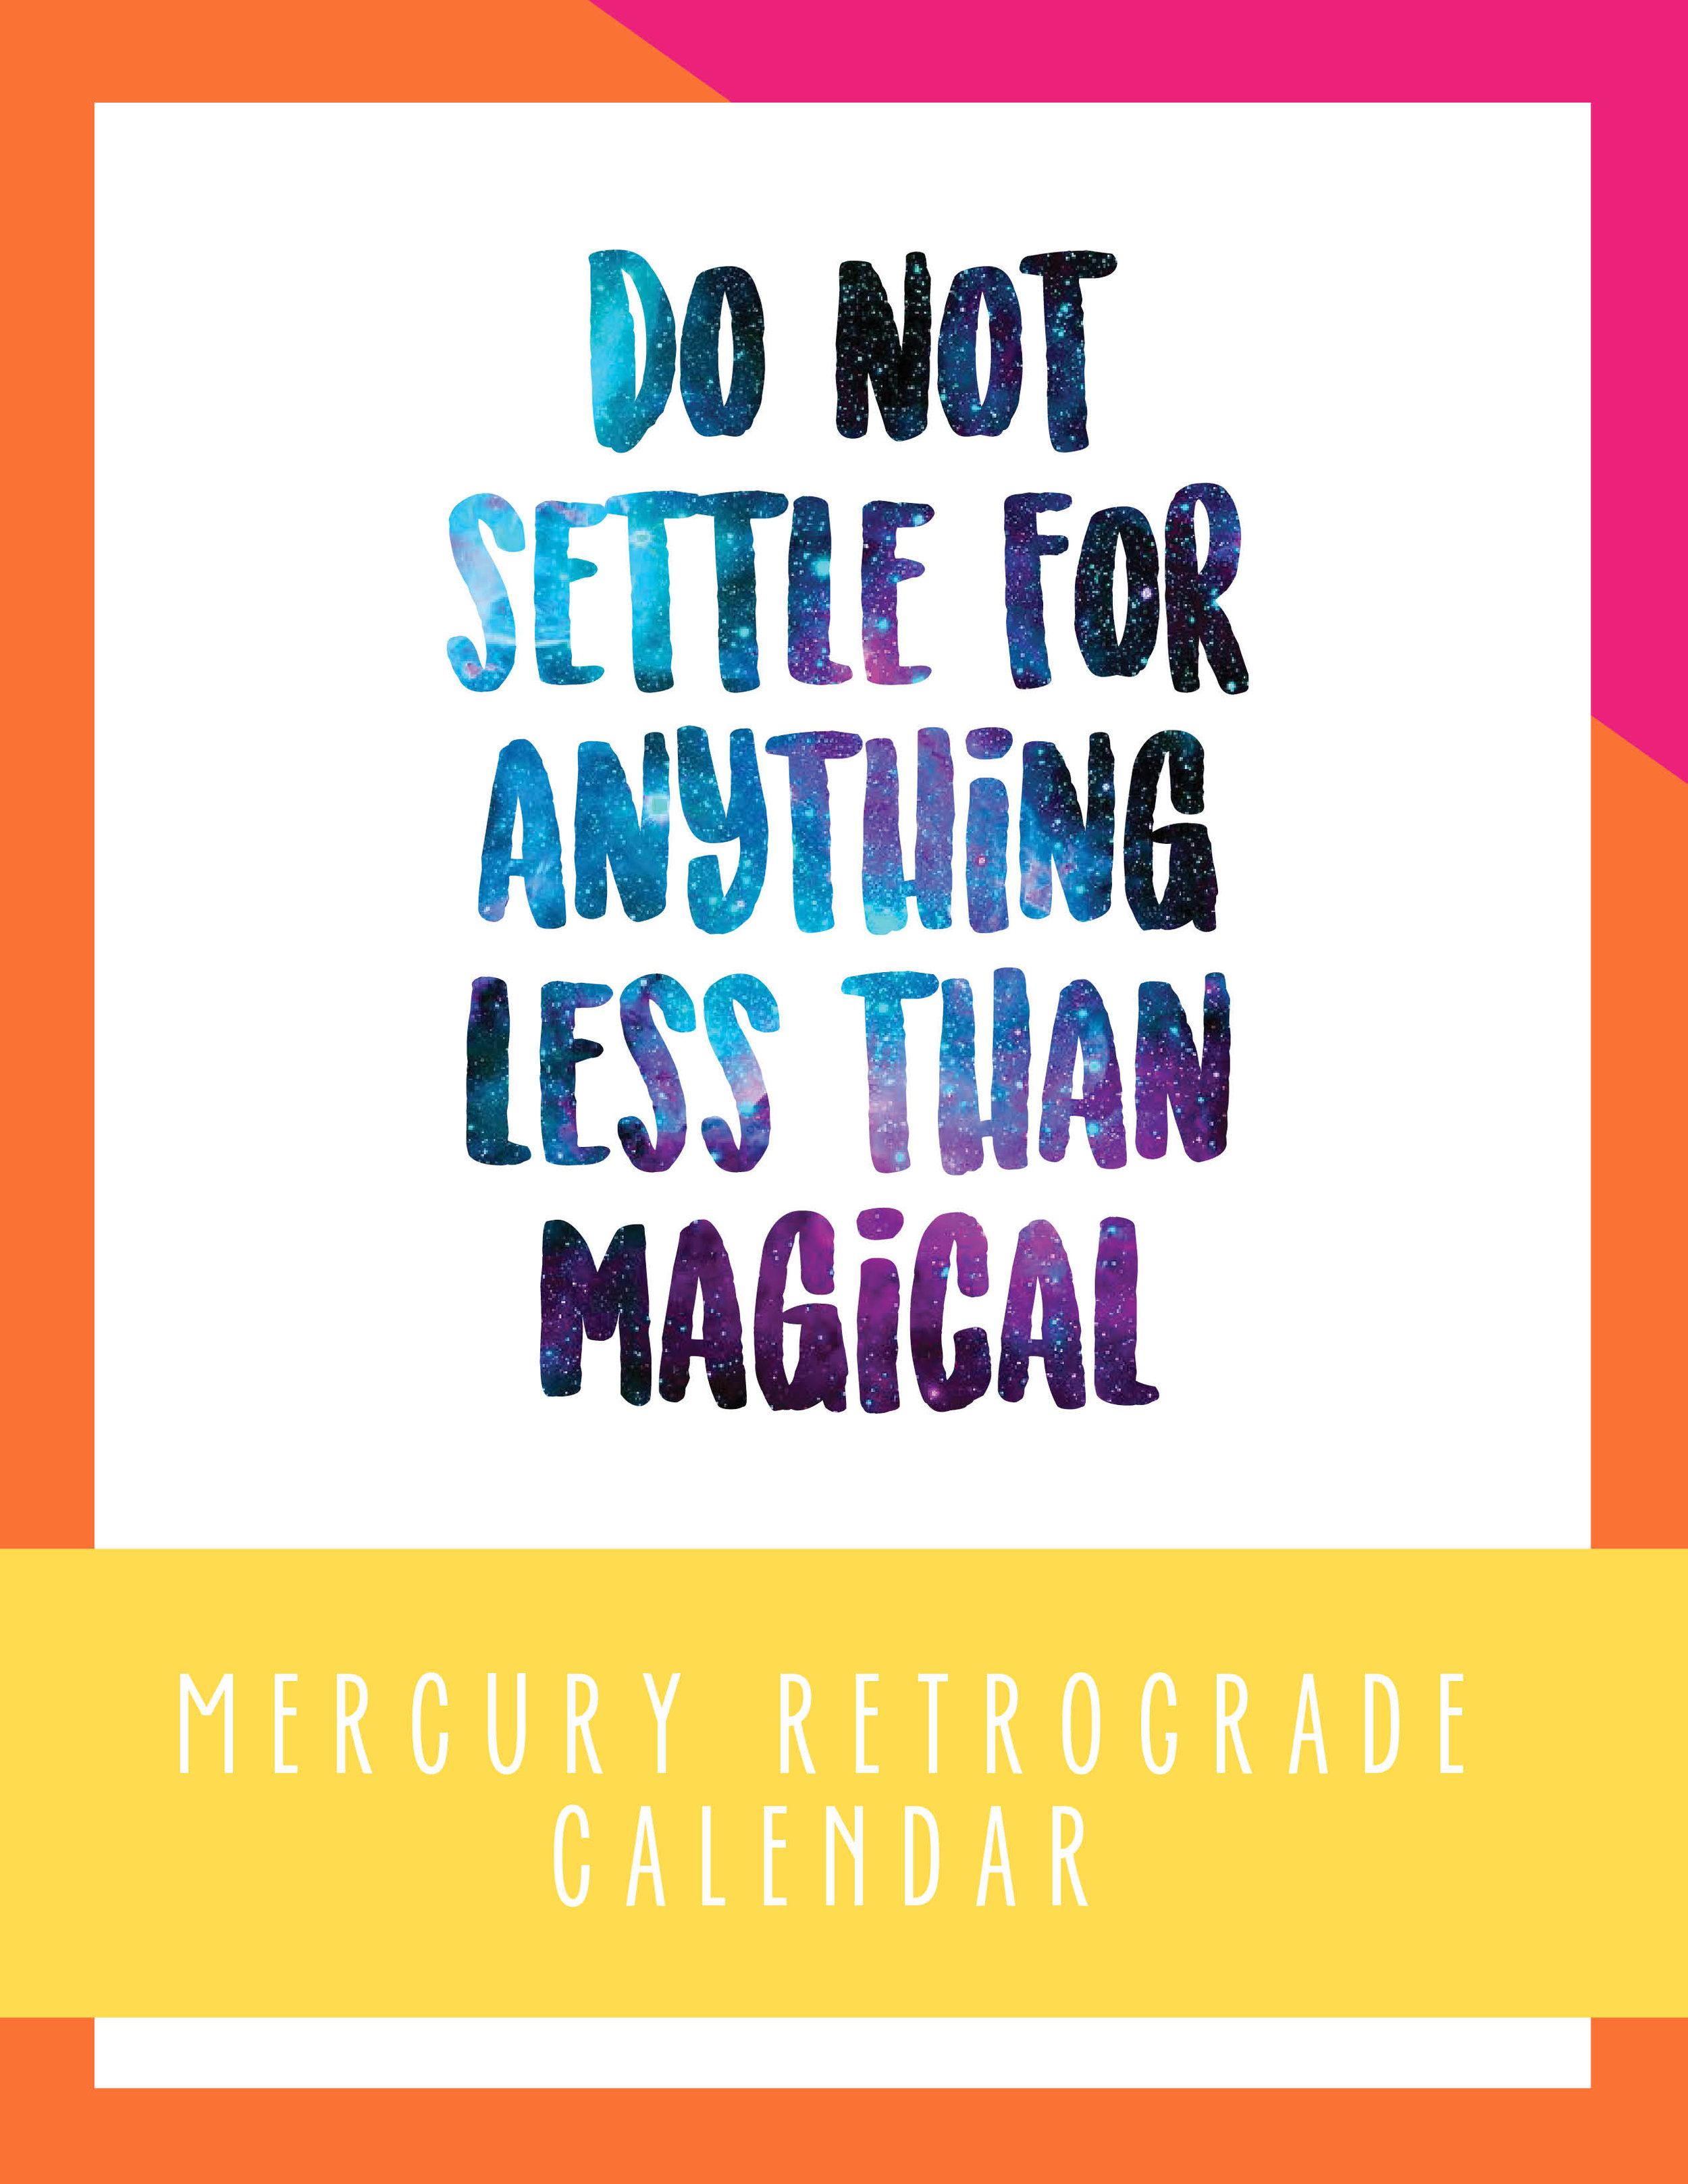 Do Not Settle for Anything Less than Magical Mercury Retrograde Calendar